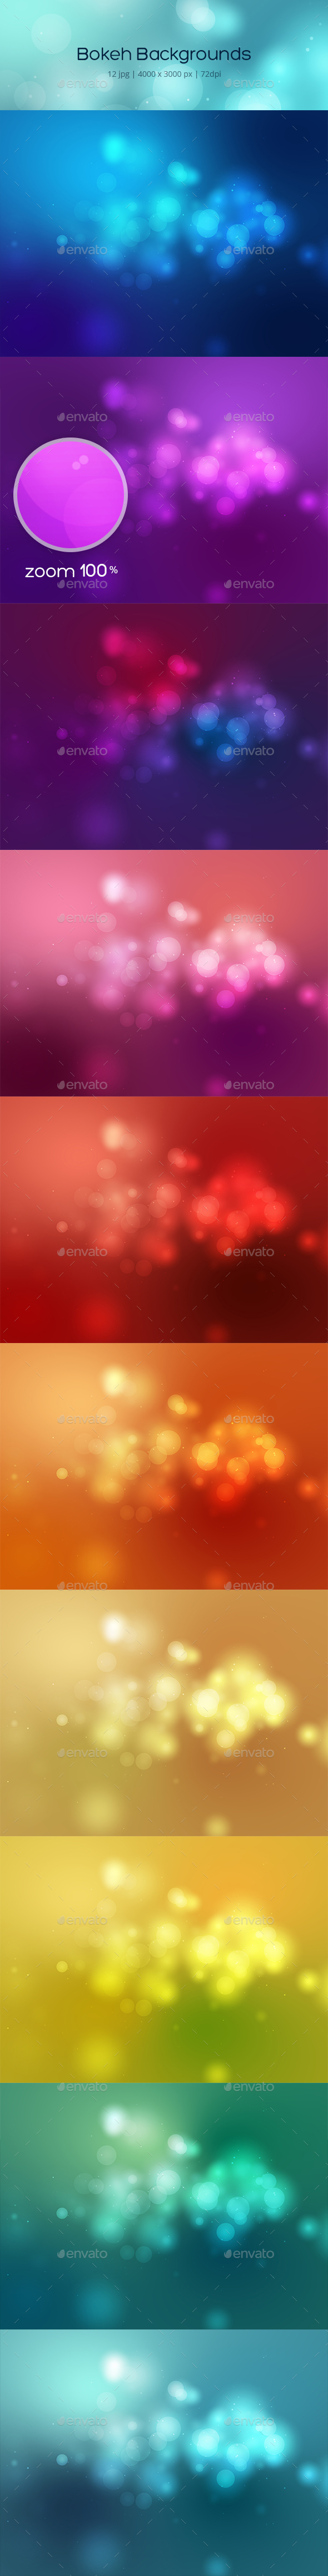 Bokeh Backgrounds - Backgrounds Graphics